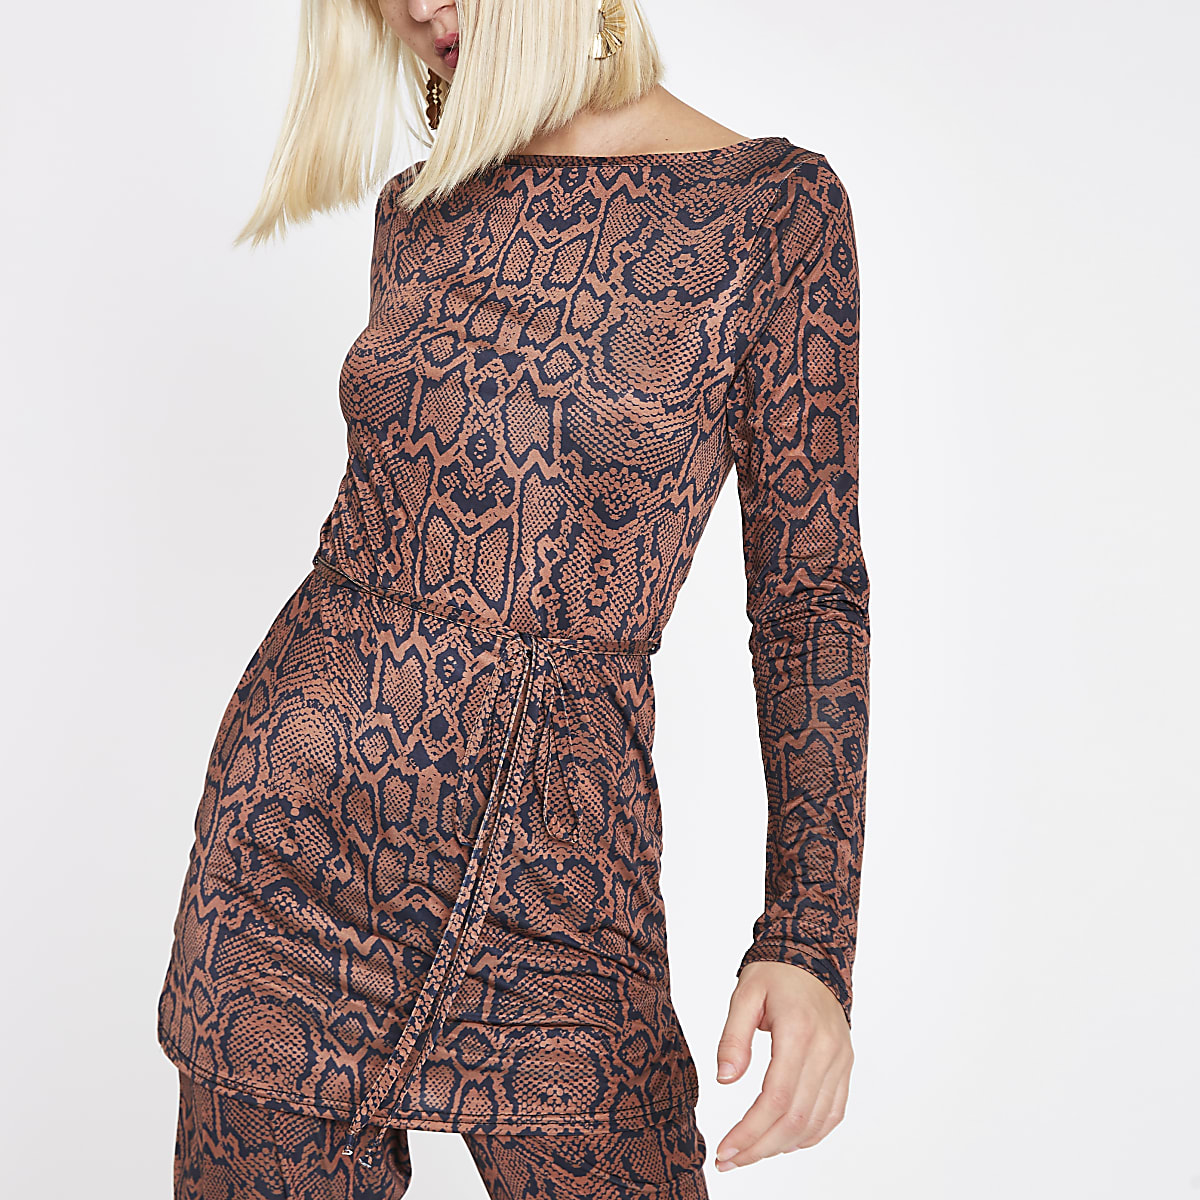 Brown snake print belted long sleeve top